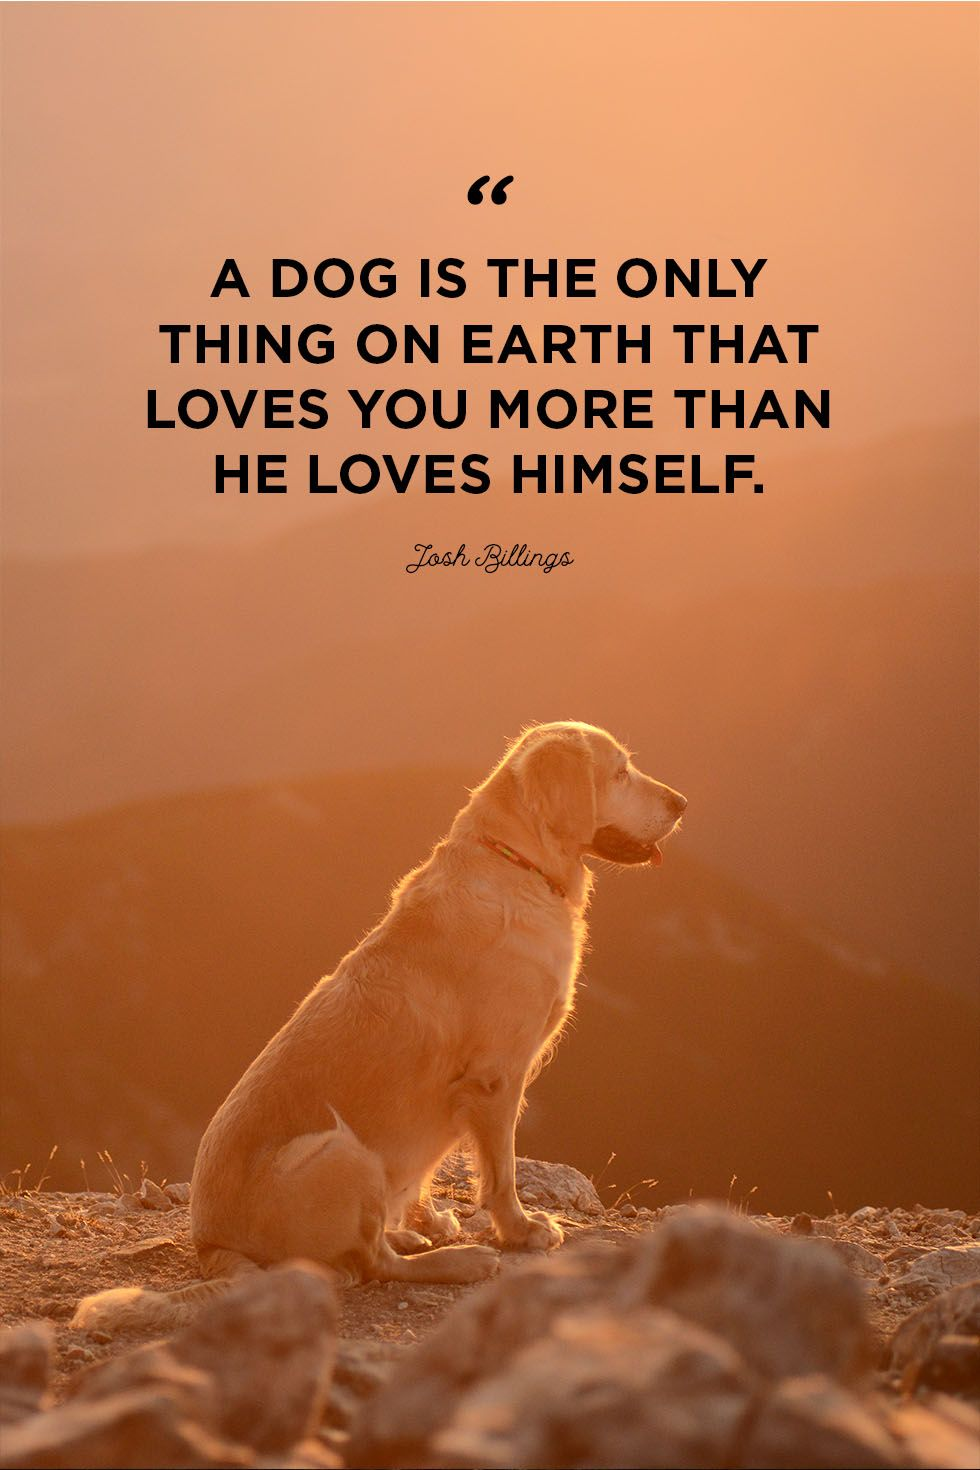 30 Cute Dog Love Quotes - Puppy Sayings and Dog Best Friend Quotes